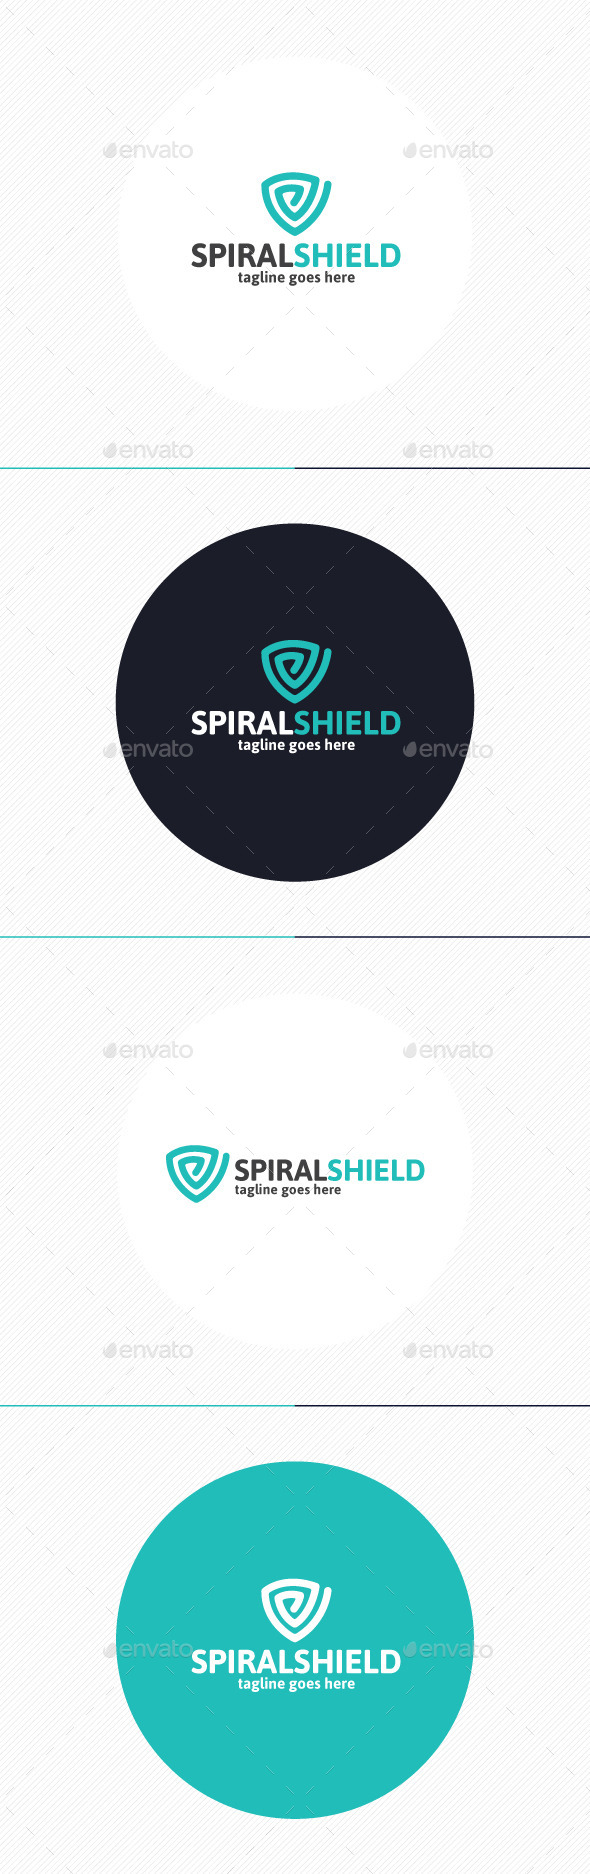 GraphicRiver Spiral Shield Logo 9813591